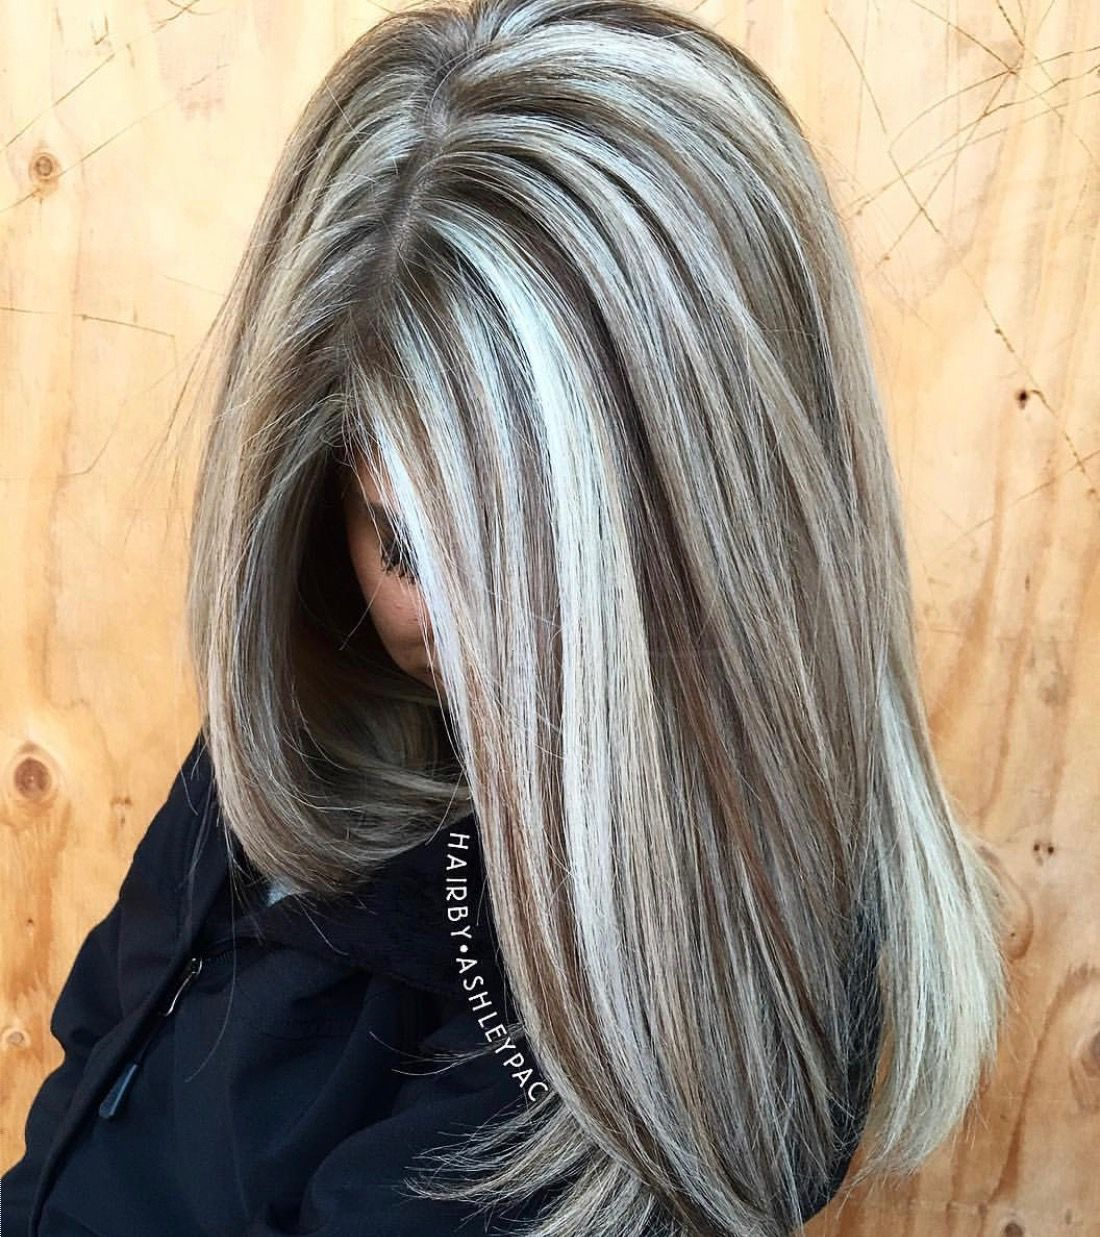 If Only My Grays Could Look Like This Going Gray Gracefully In